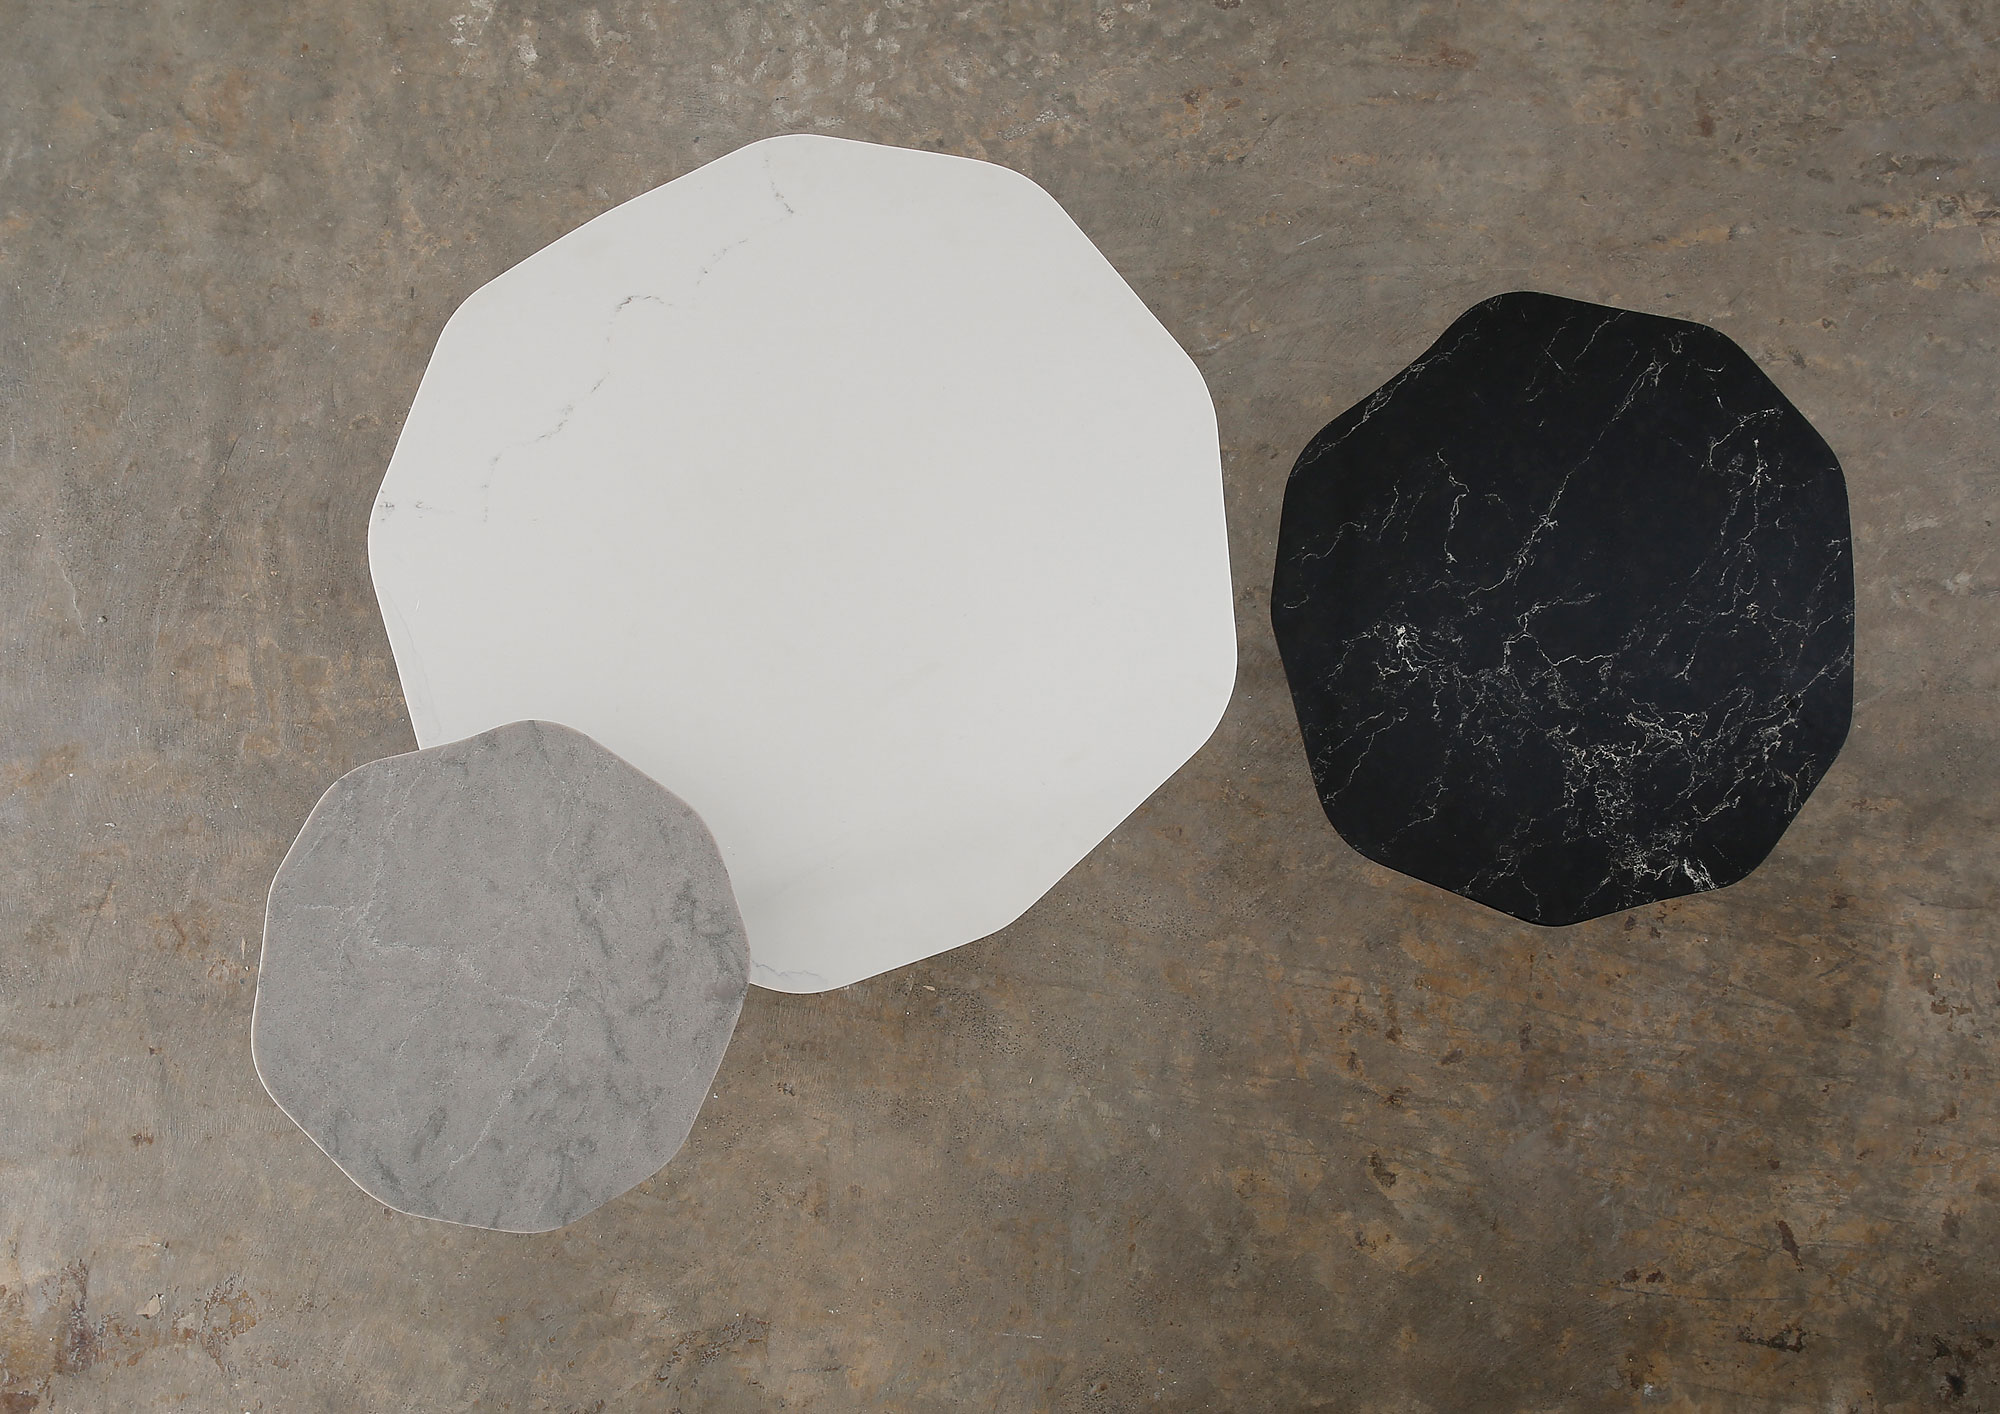 Caesarstone collaborates with designer Rona Meyuchas-Koblenz for London Design Festival 2015 & Caesarstone collaborates with designer Rona Meyuchas-Koblenz for ...